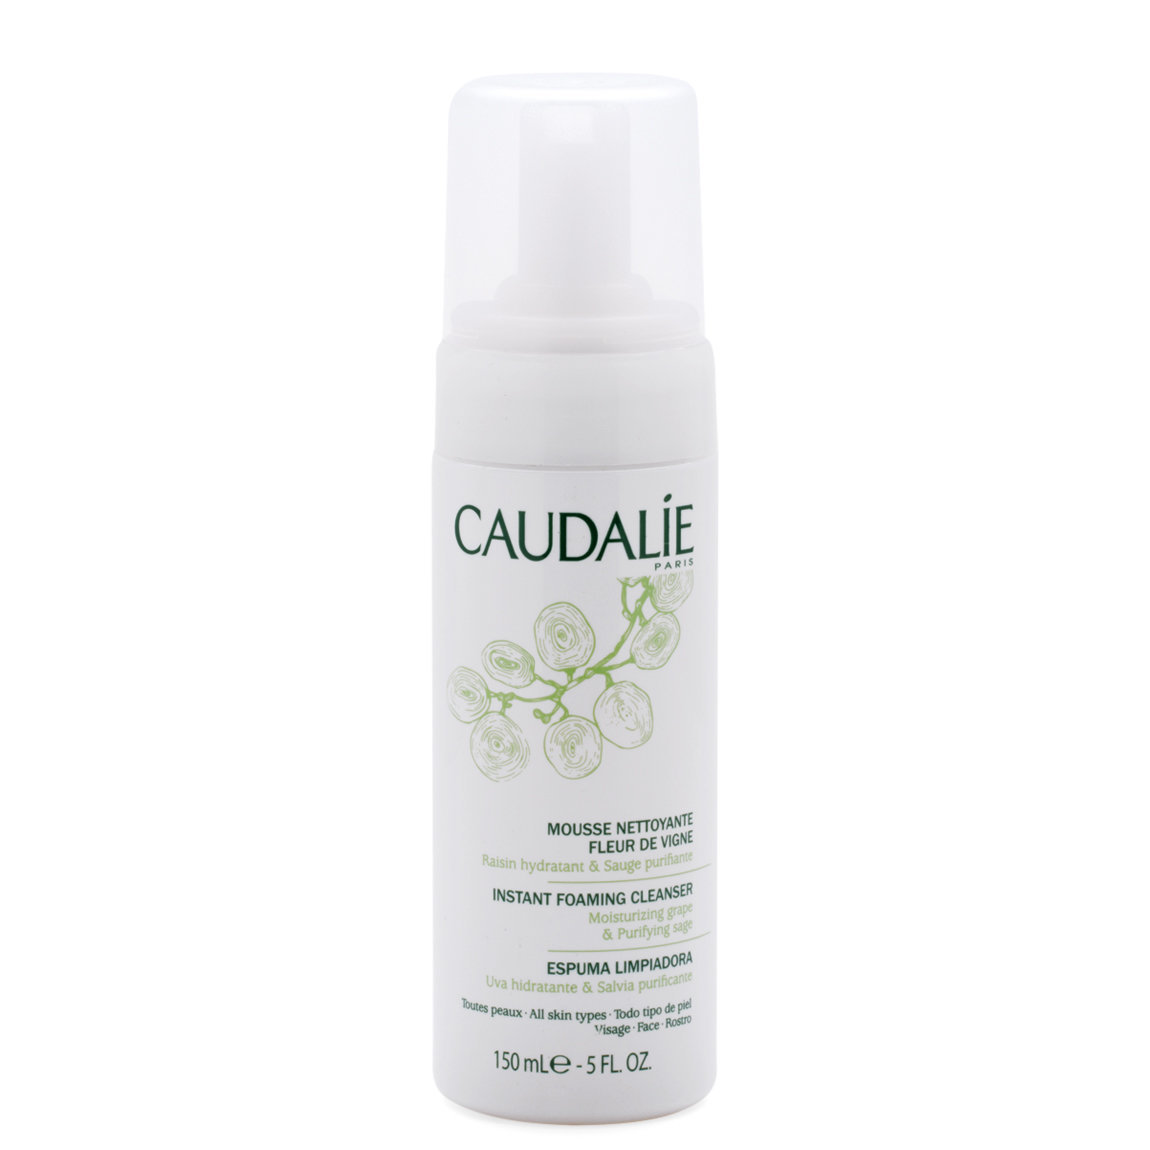 Caudalie Instant Foaming Cleanser 150 ml